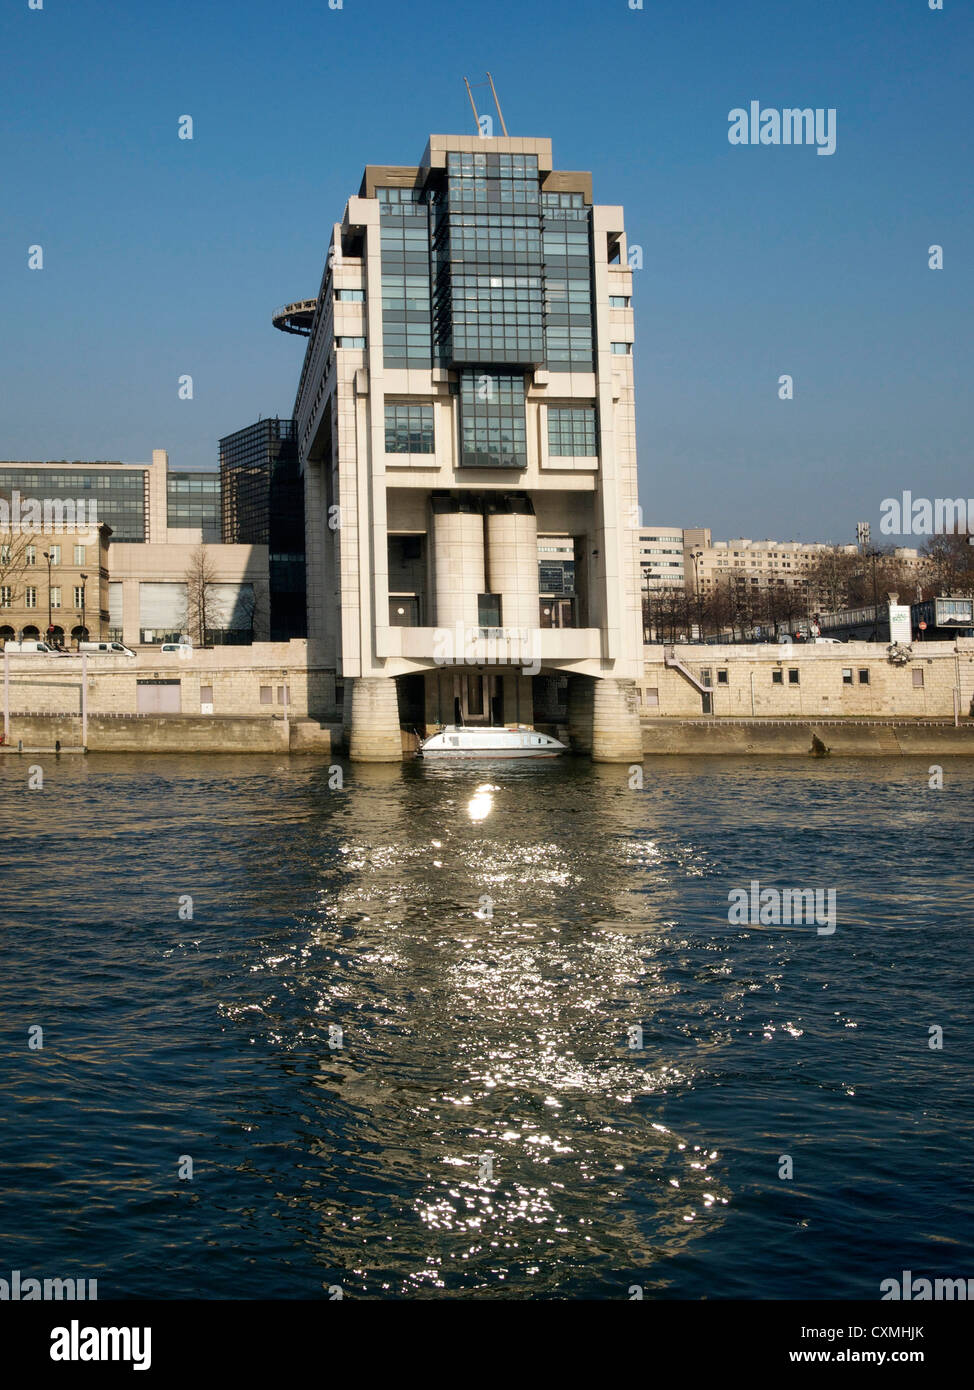 Ministry of Finance and the water entrance, Pont de Bercy, Seine, Paris, France, Europe - Stock Image